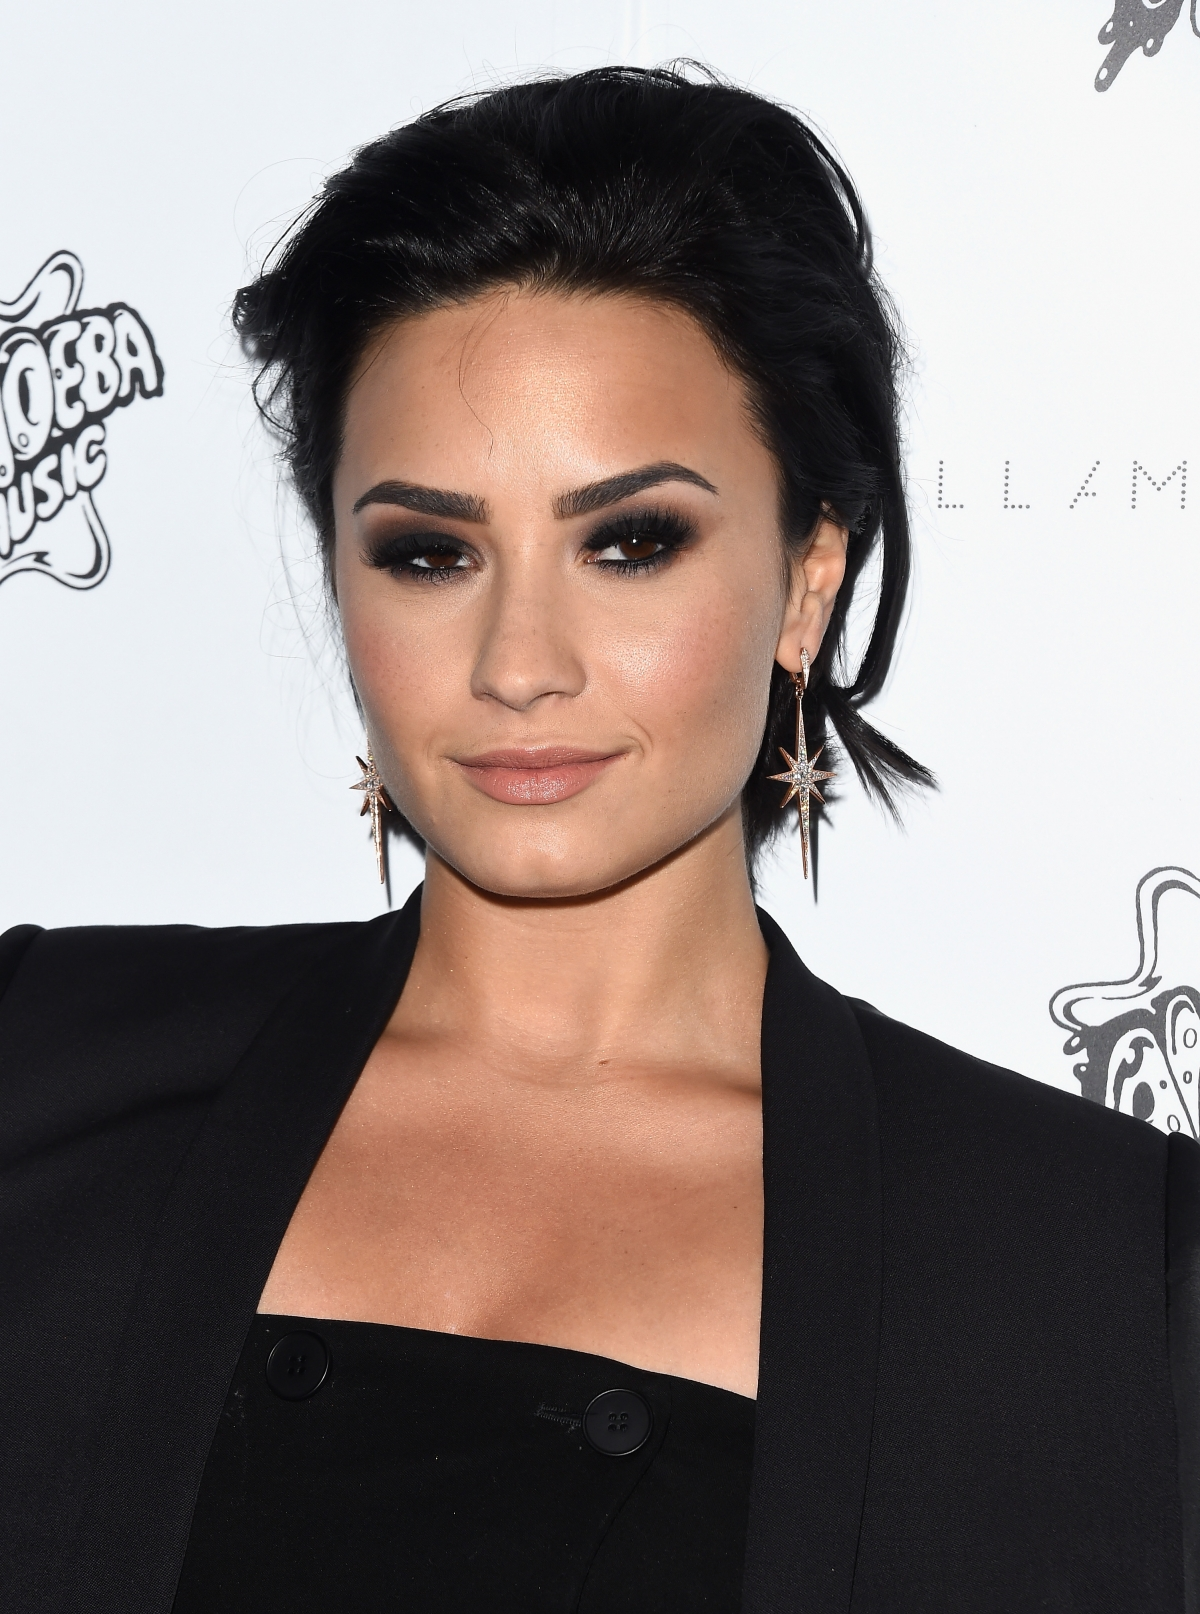 Demi Lovato Talks Drug Addiction And Eating Disorder I Didn T Think I Would Make It To 21